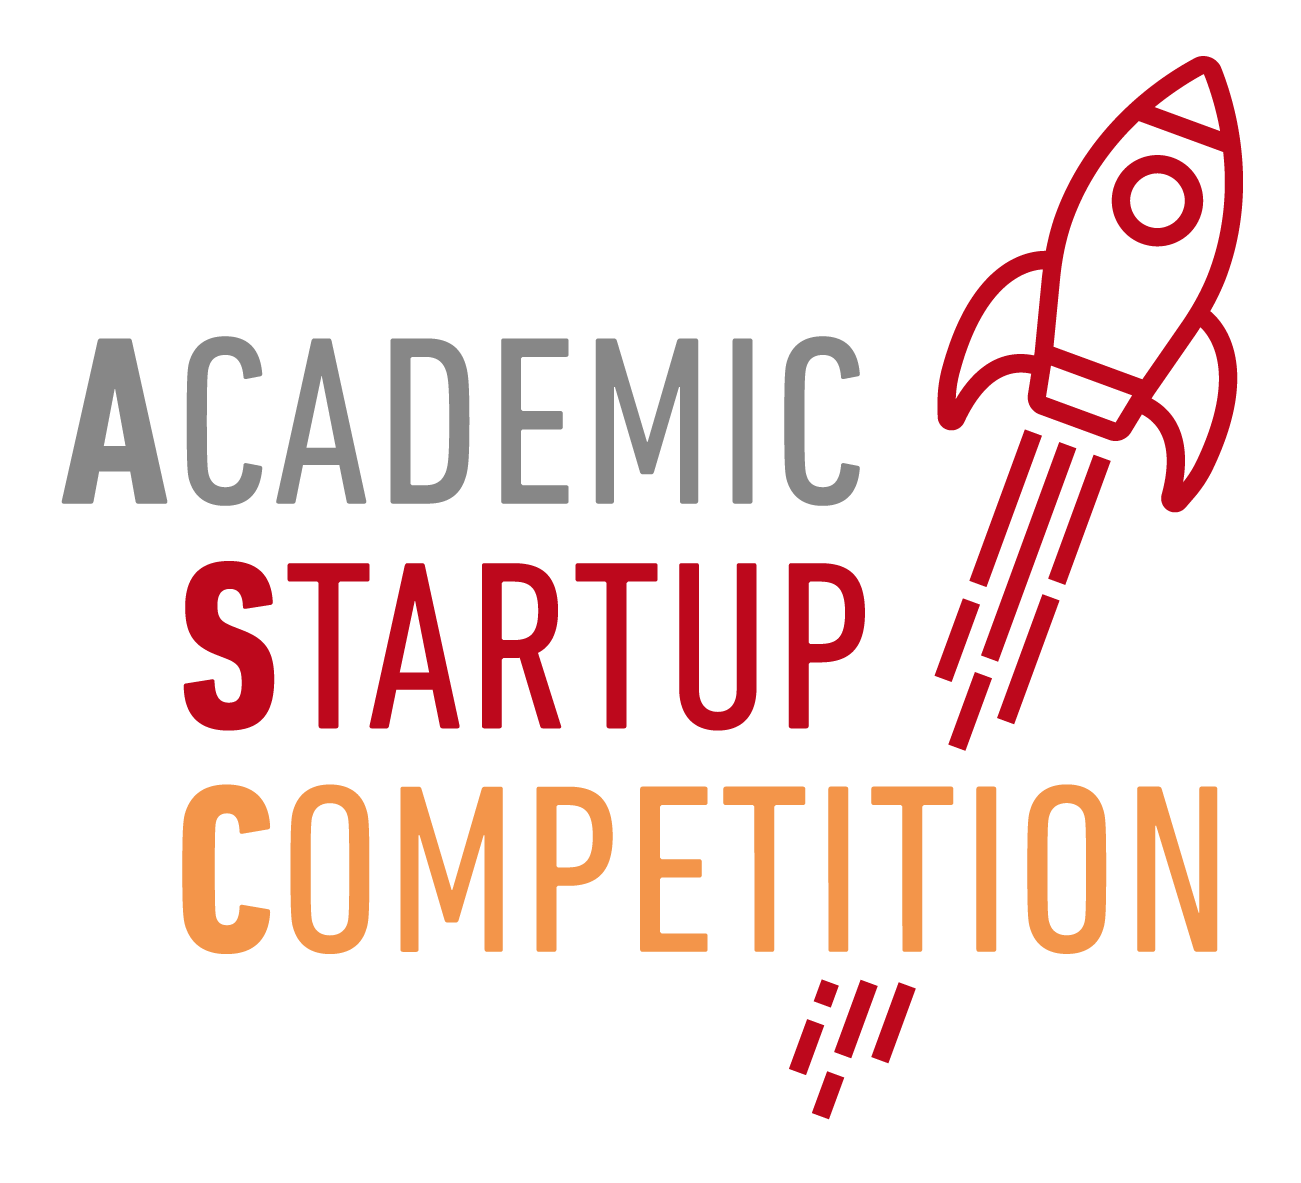 Academic Startup Competition